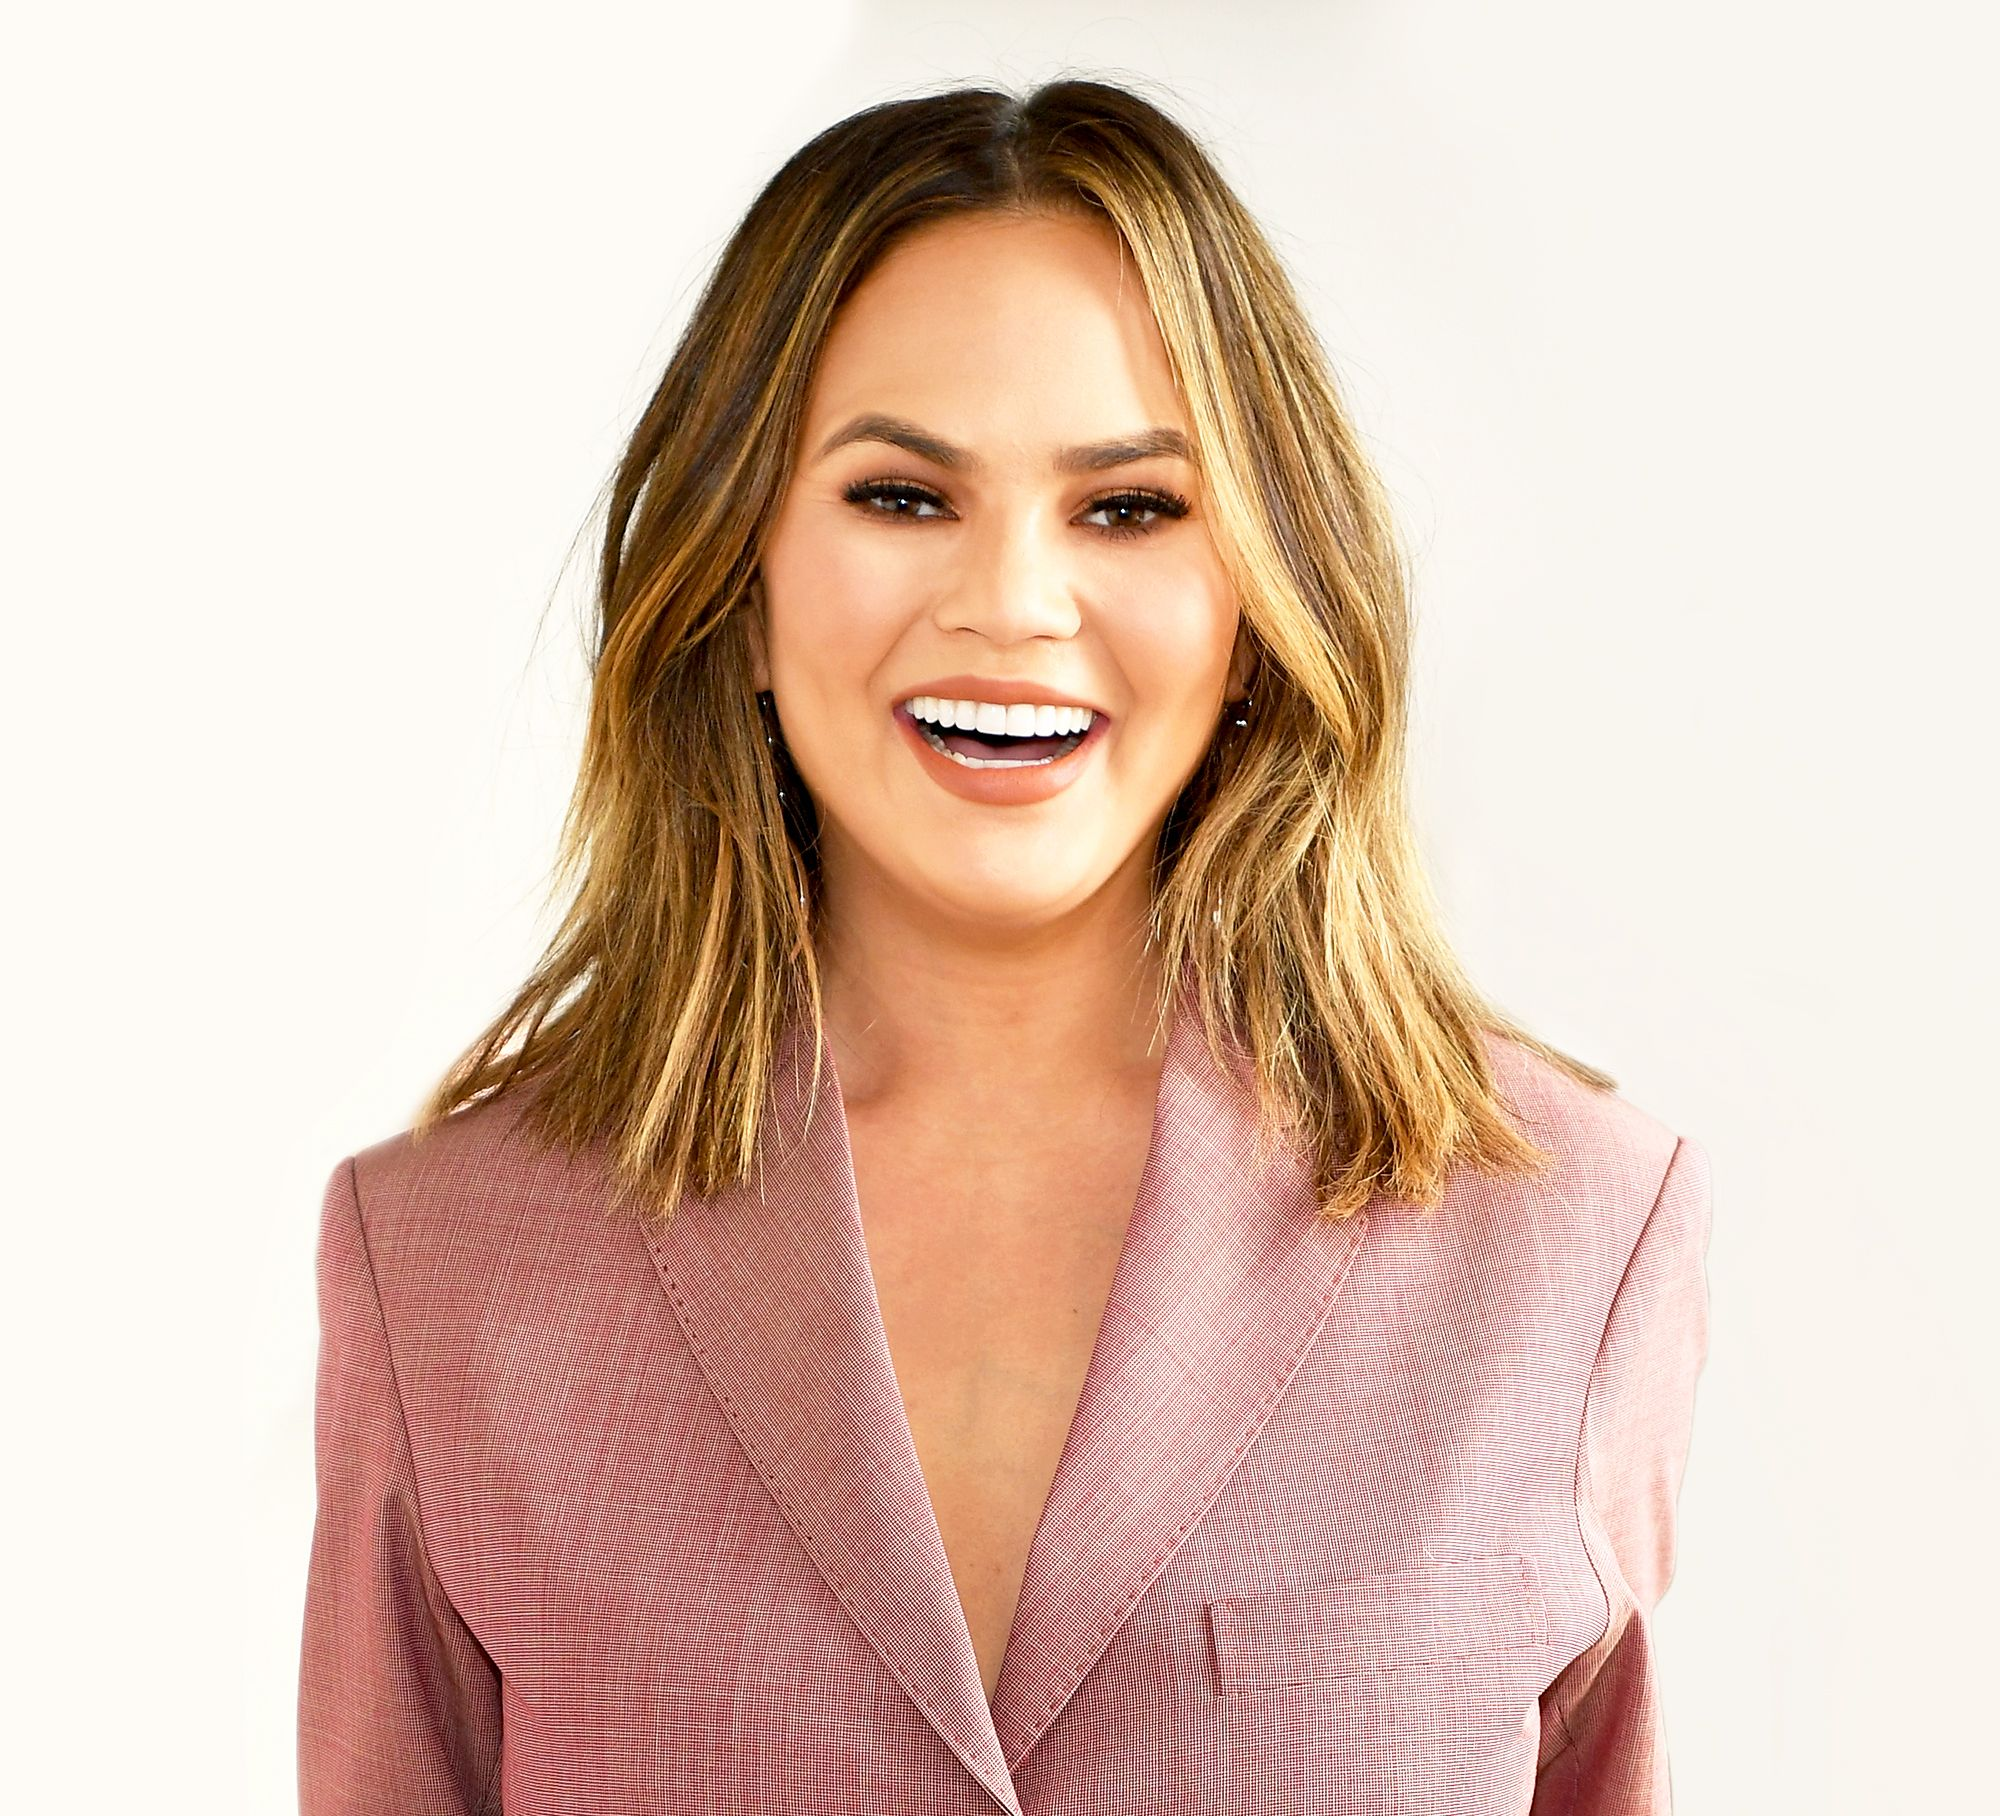 Chrissy Teigen Says Get Out of My Uterus Chrissy Teigen Says Get Out of My Uterus new pics